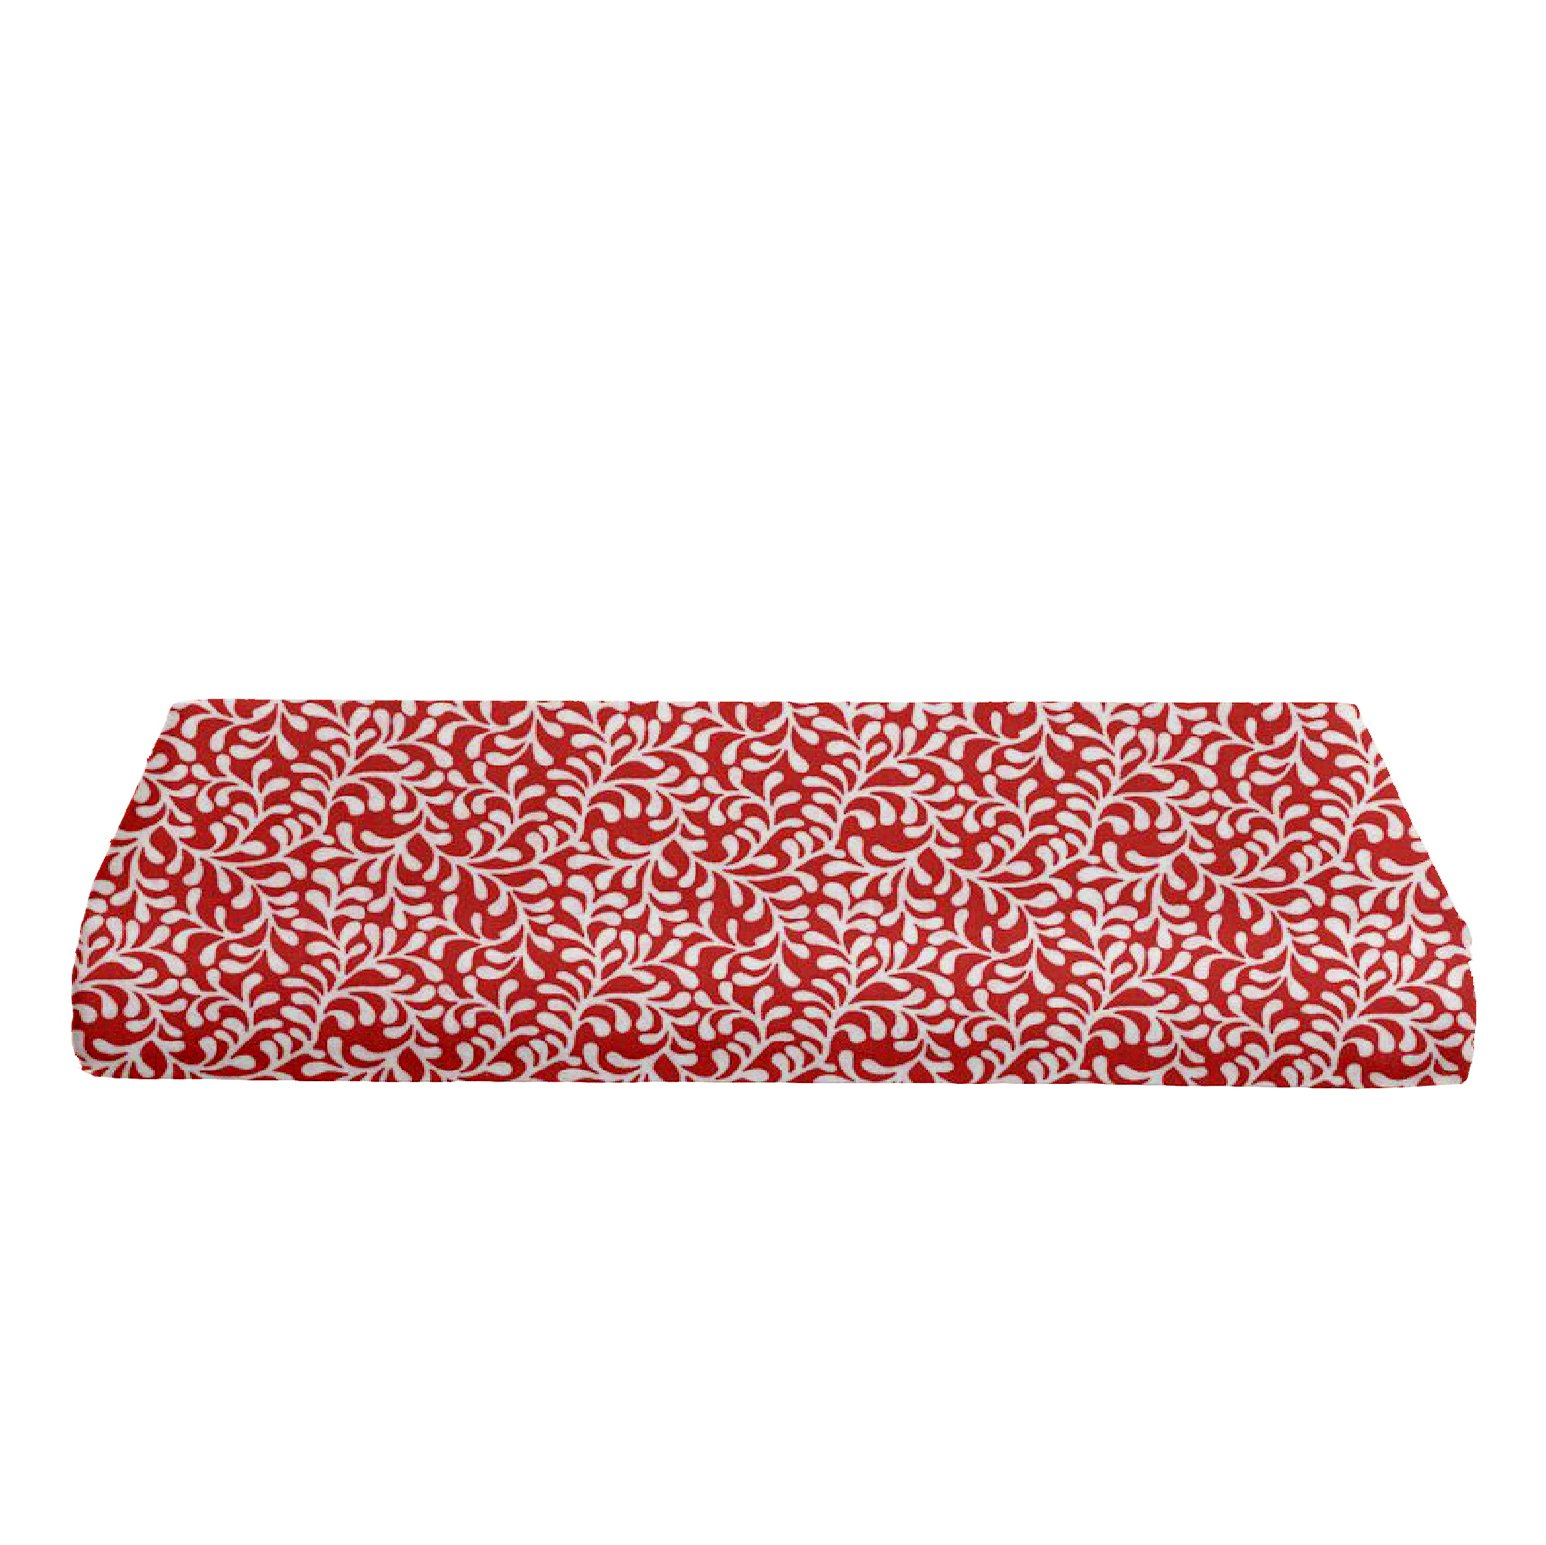 BKB Contour Changing Pad Cover, Plume Bloom Red